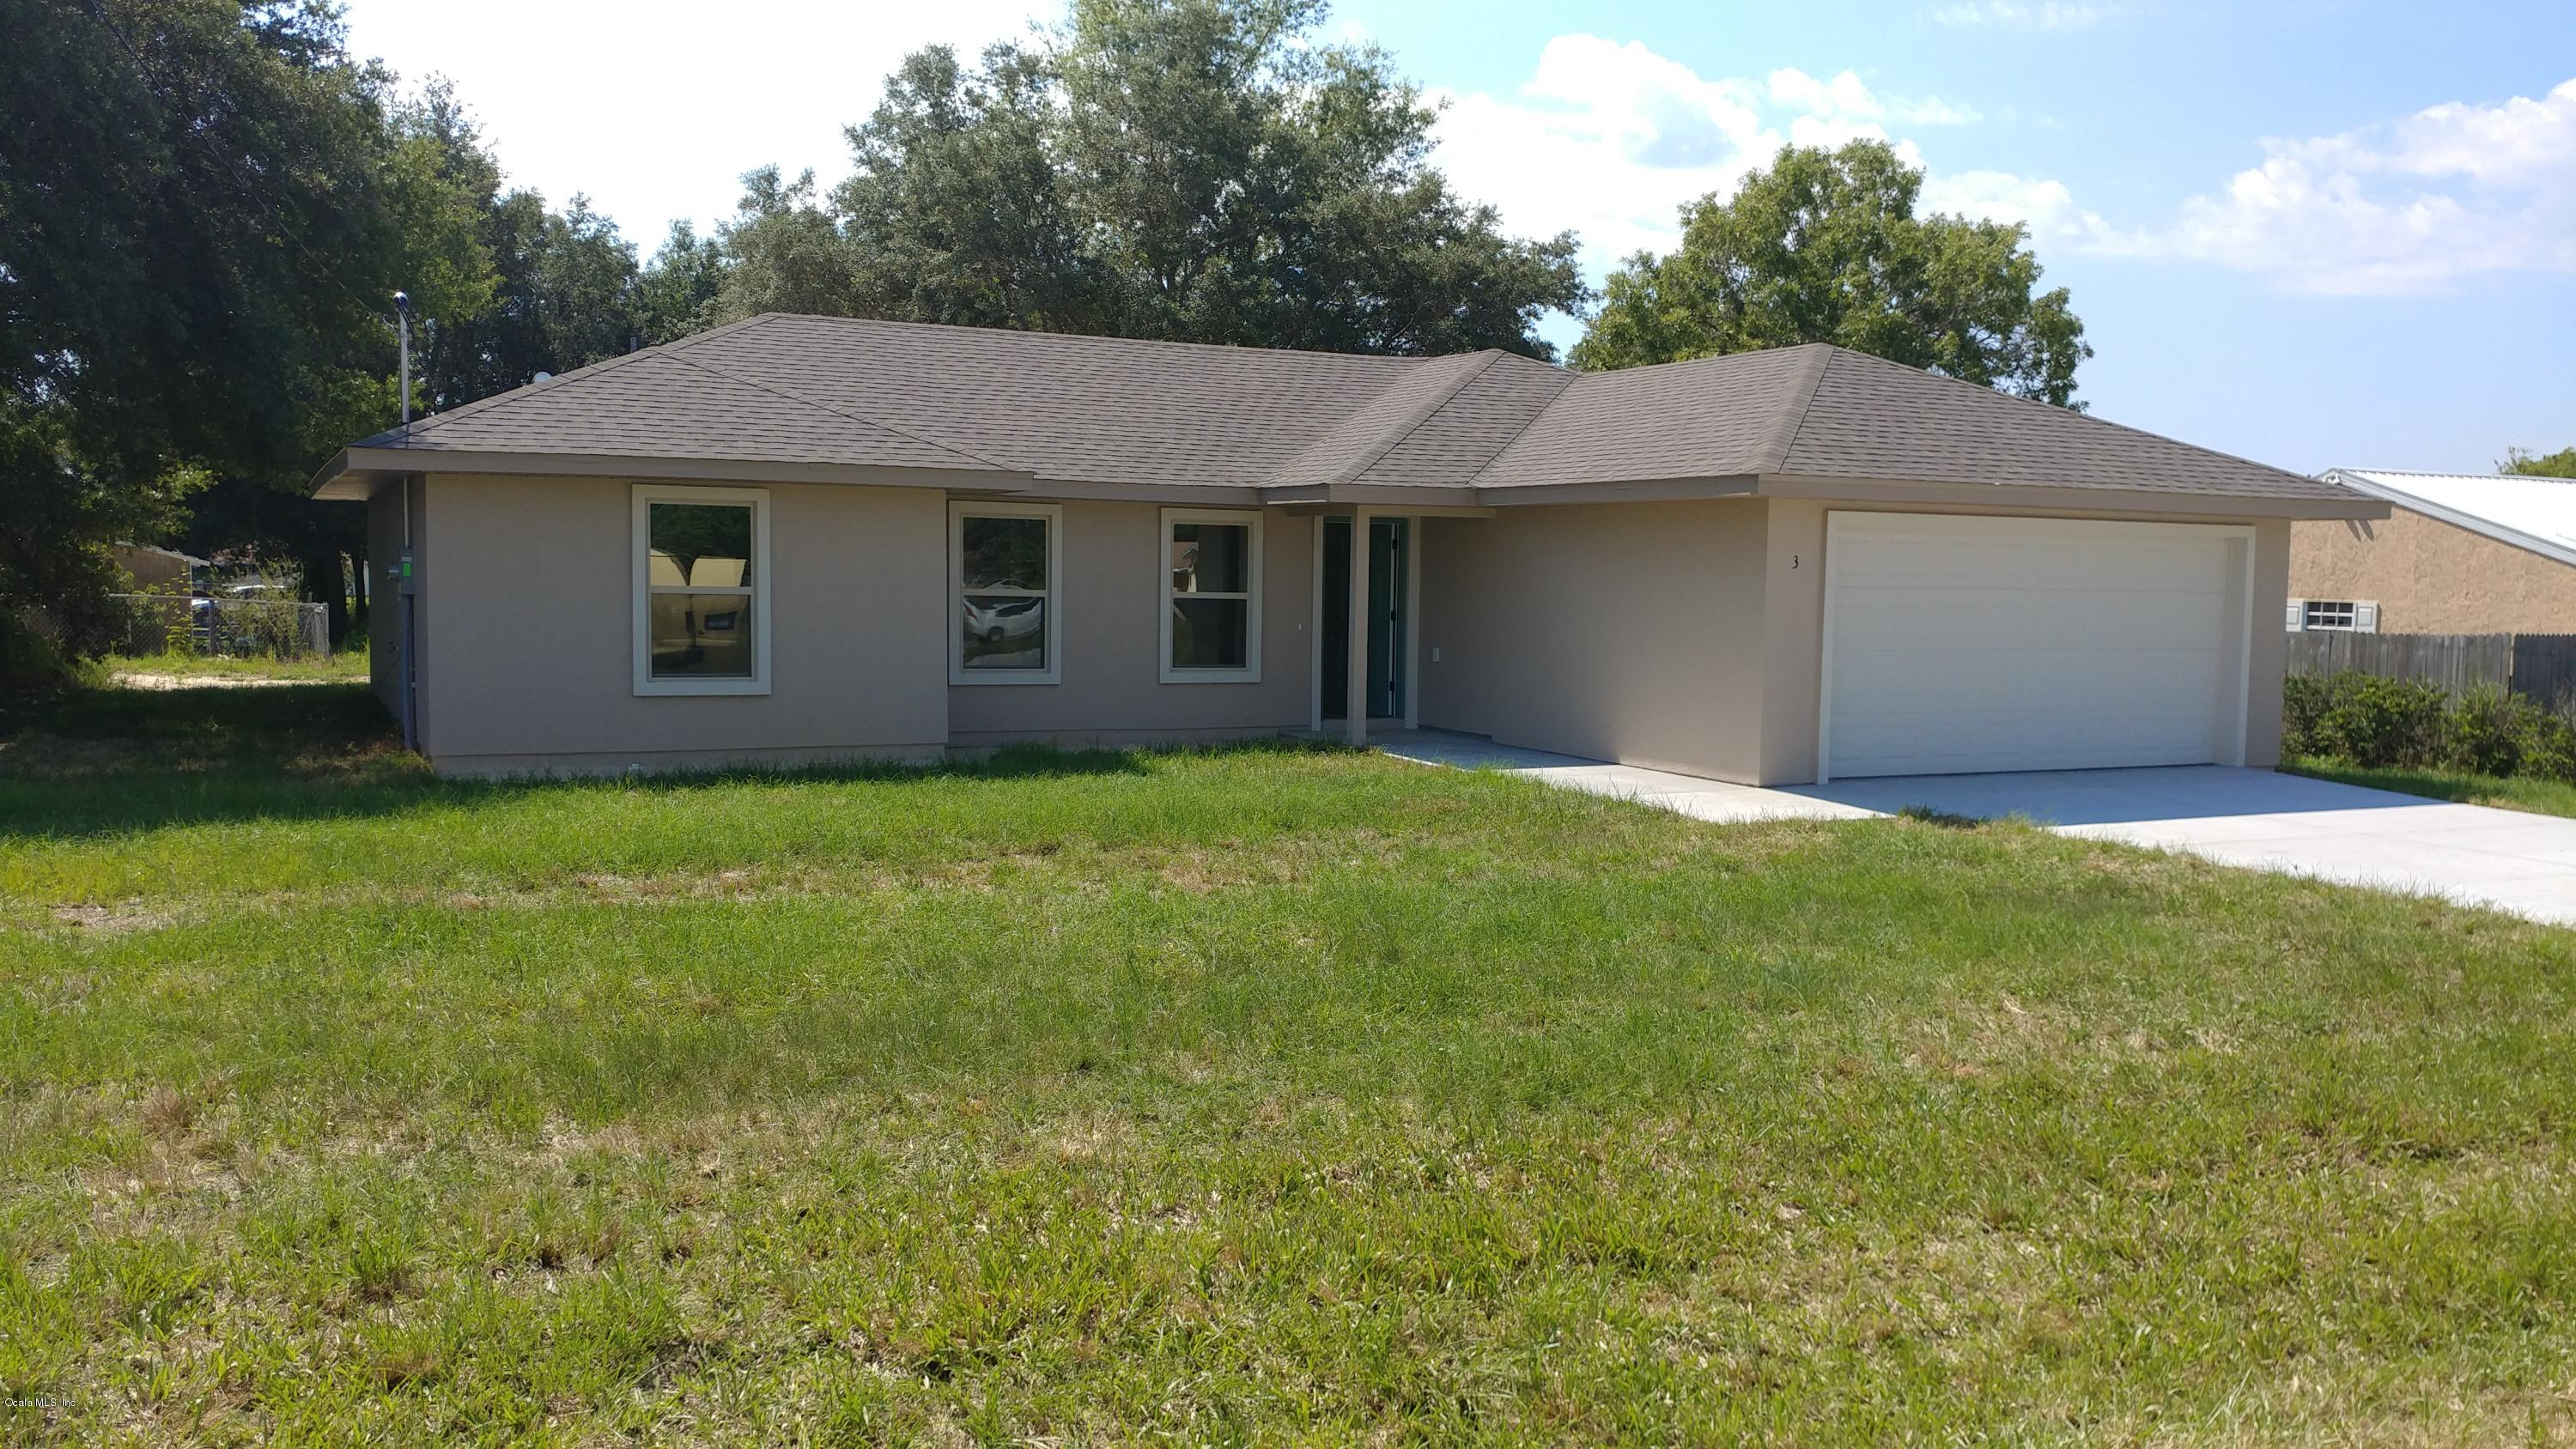 silver springs shores homes for sale in ocala rh savvyocala com